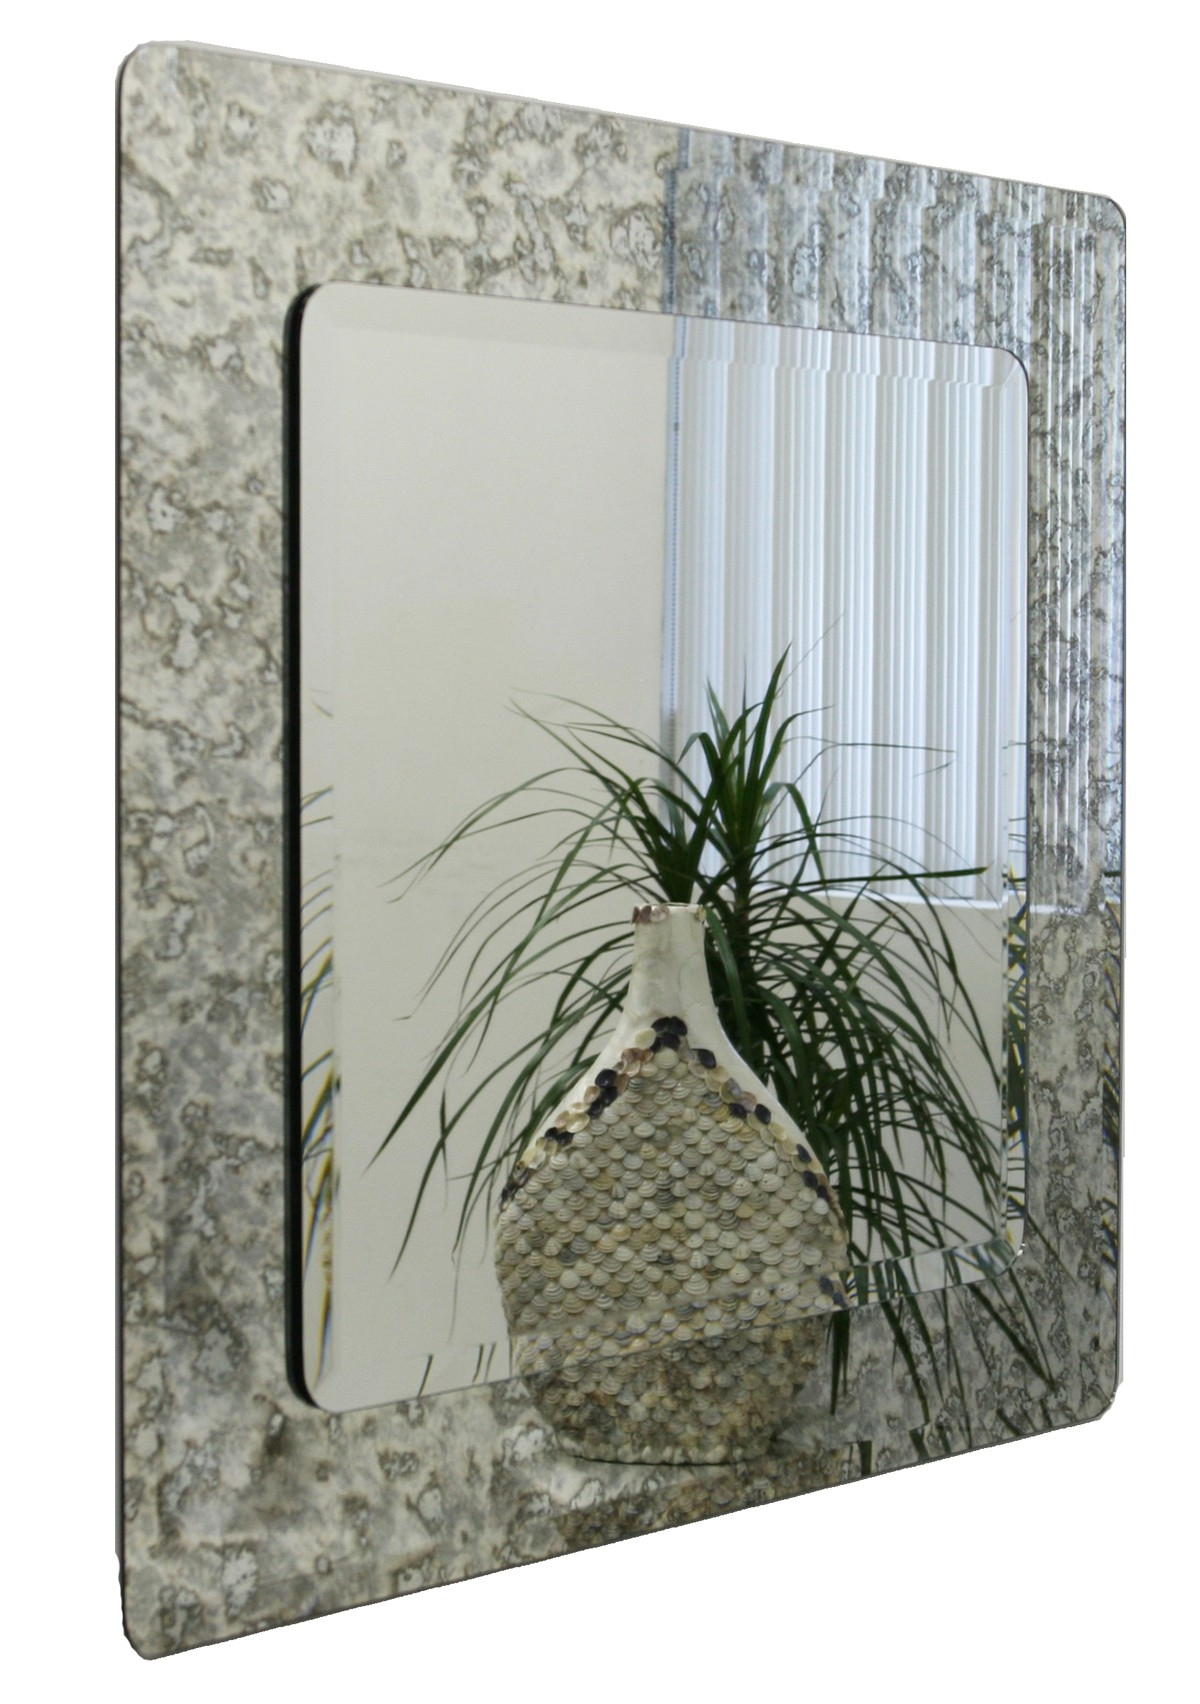 Discount Glass Top Tables Glass Shelves Glass Clearance Center With Regard To Antique Frameless Mirrors (Image 2 of 15)